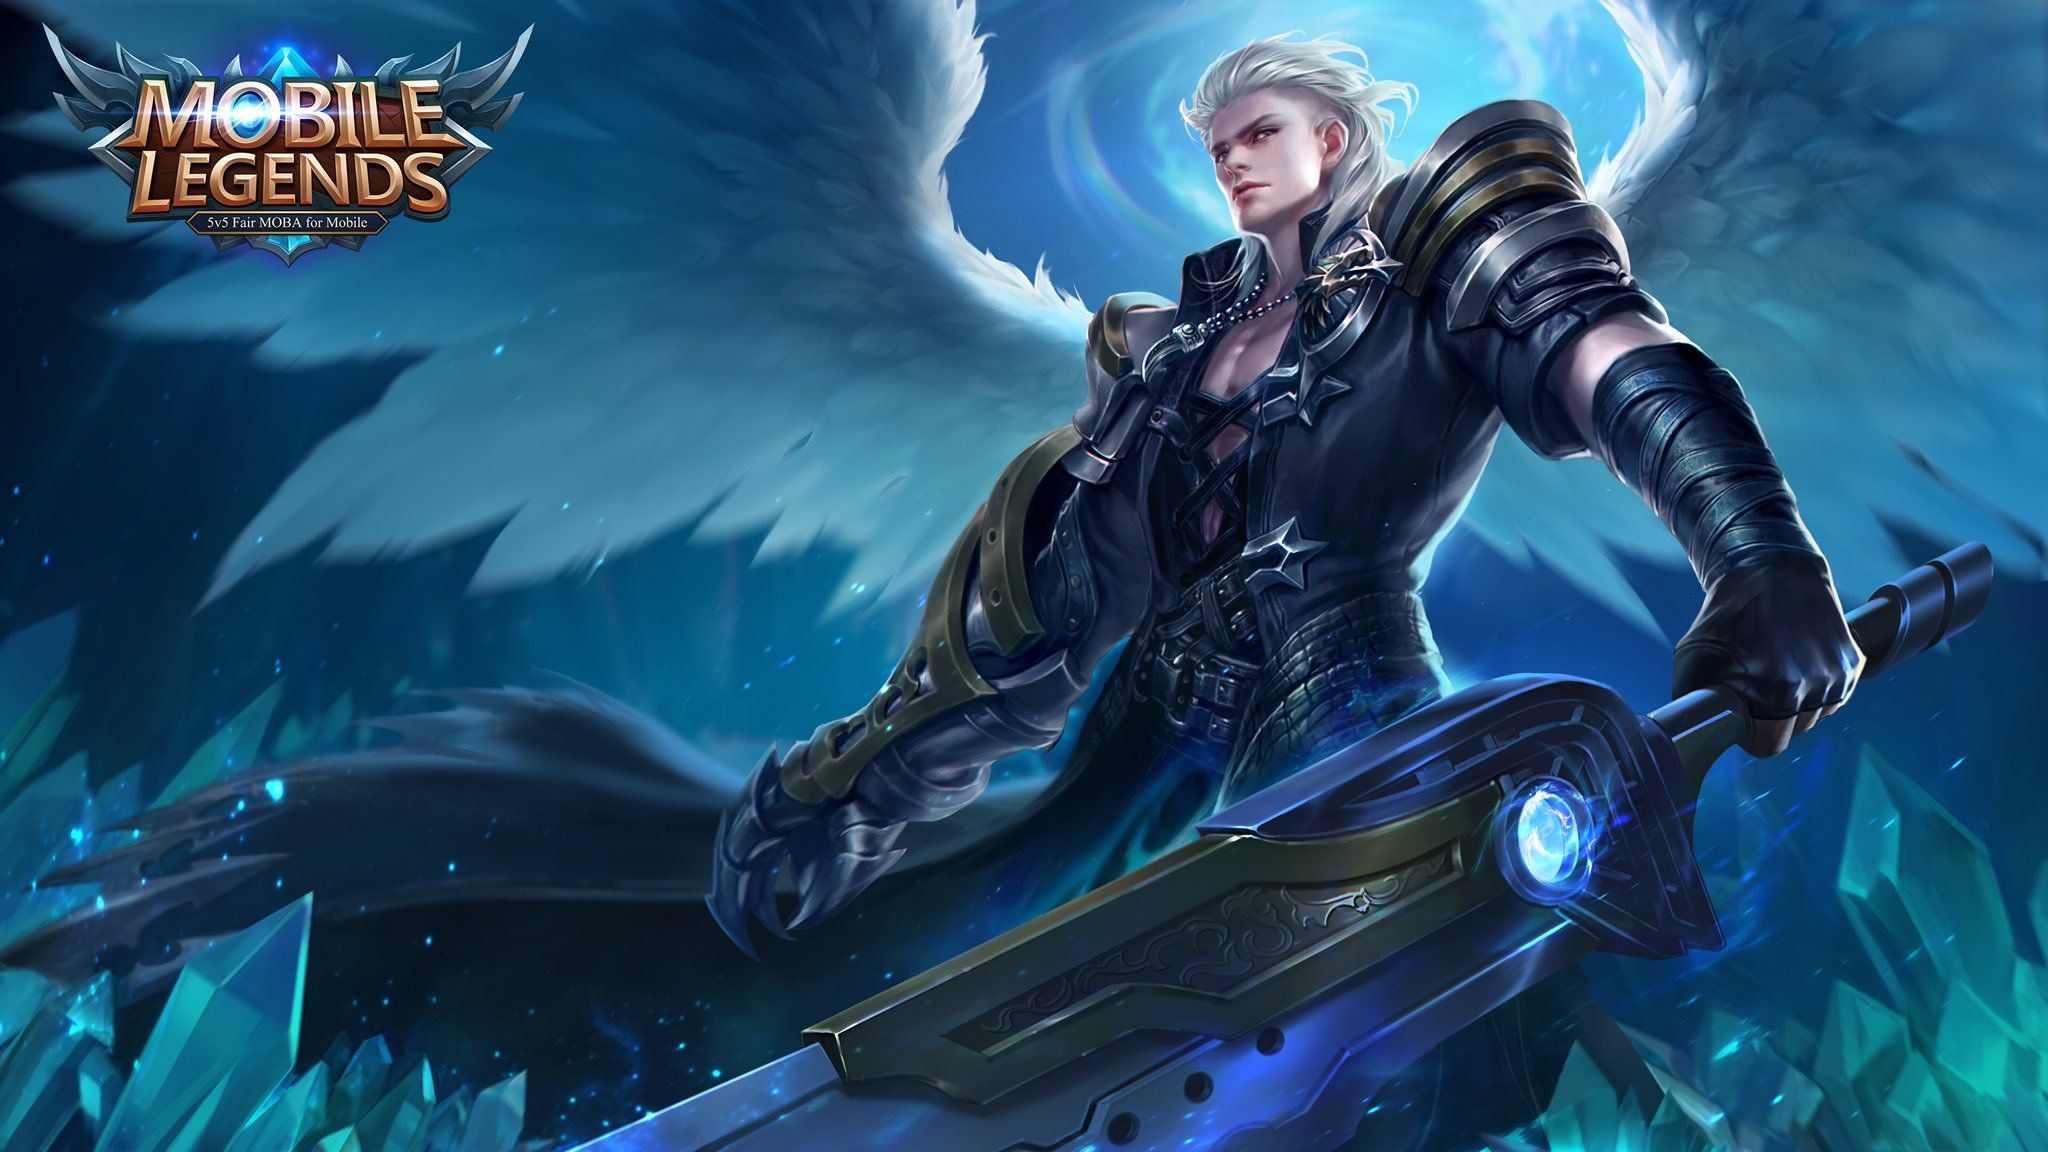 Wallpaper-Mobile-Legends-Alucard